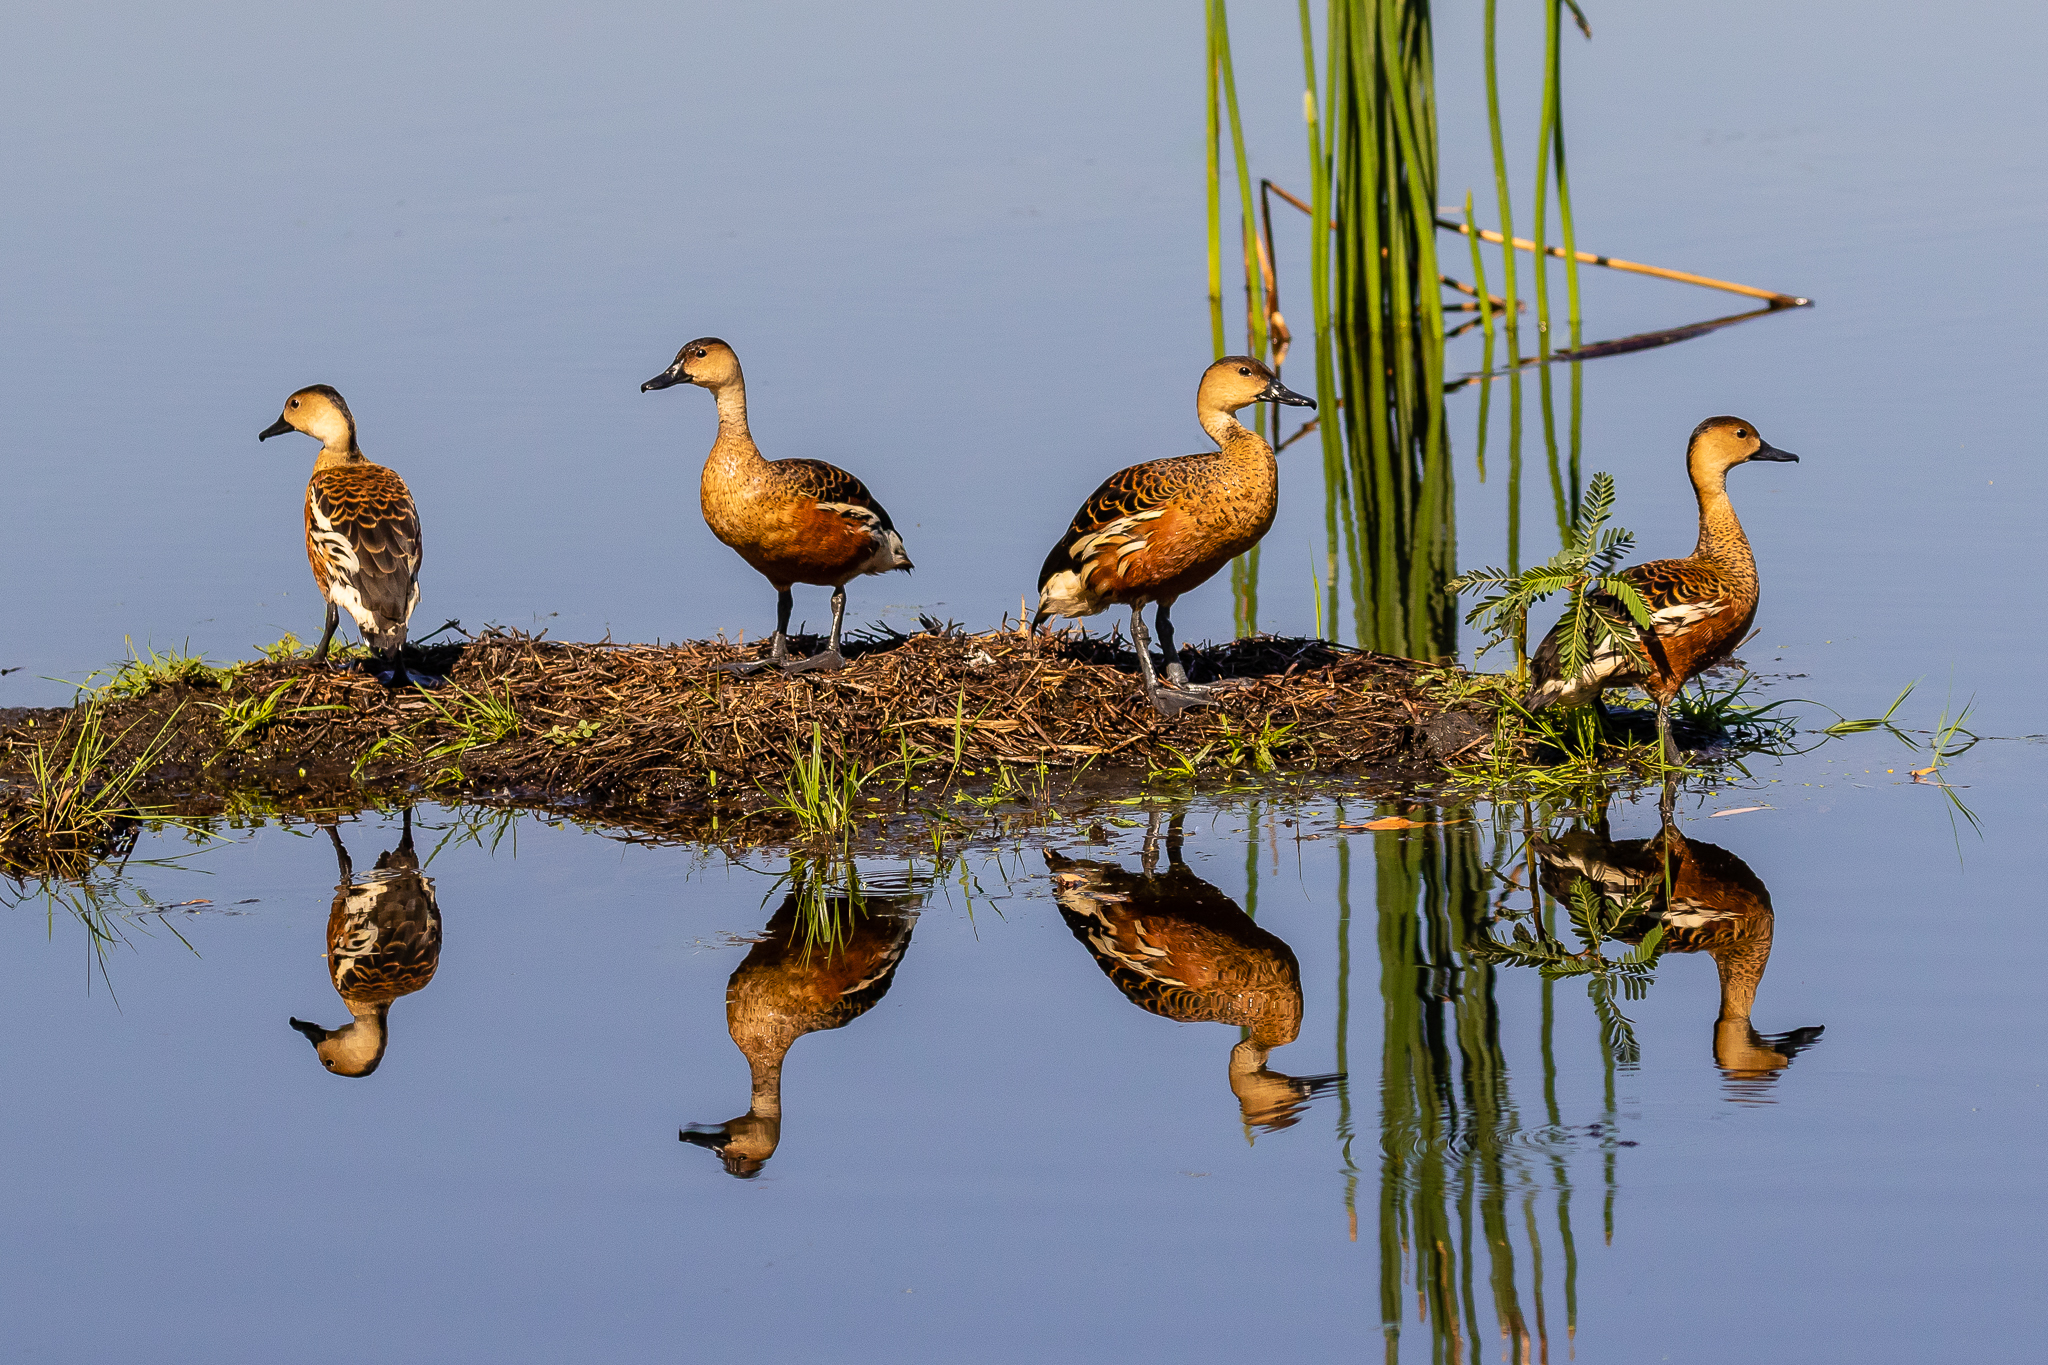 The Wandering Whistling-Duck (61 cm) is usually seen in the north, swimming and diving for aquatic plants in tropical wetlands. They have a similar whistling call to the Plumed Whistling-Duck.